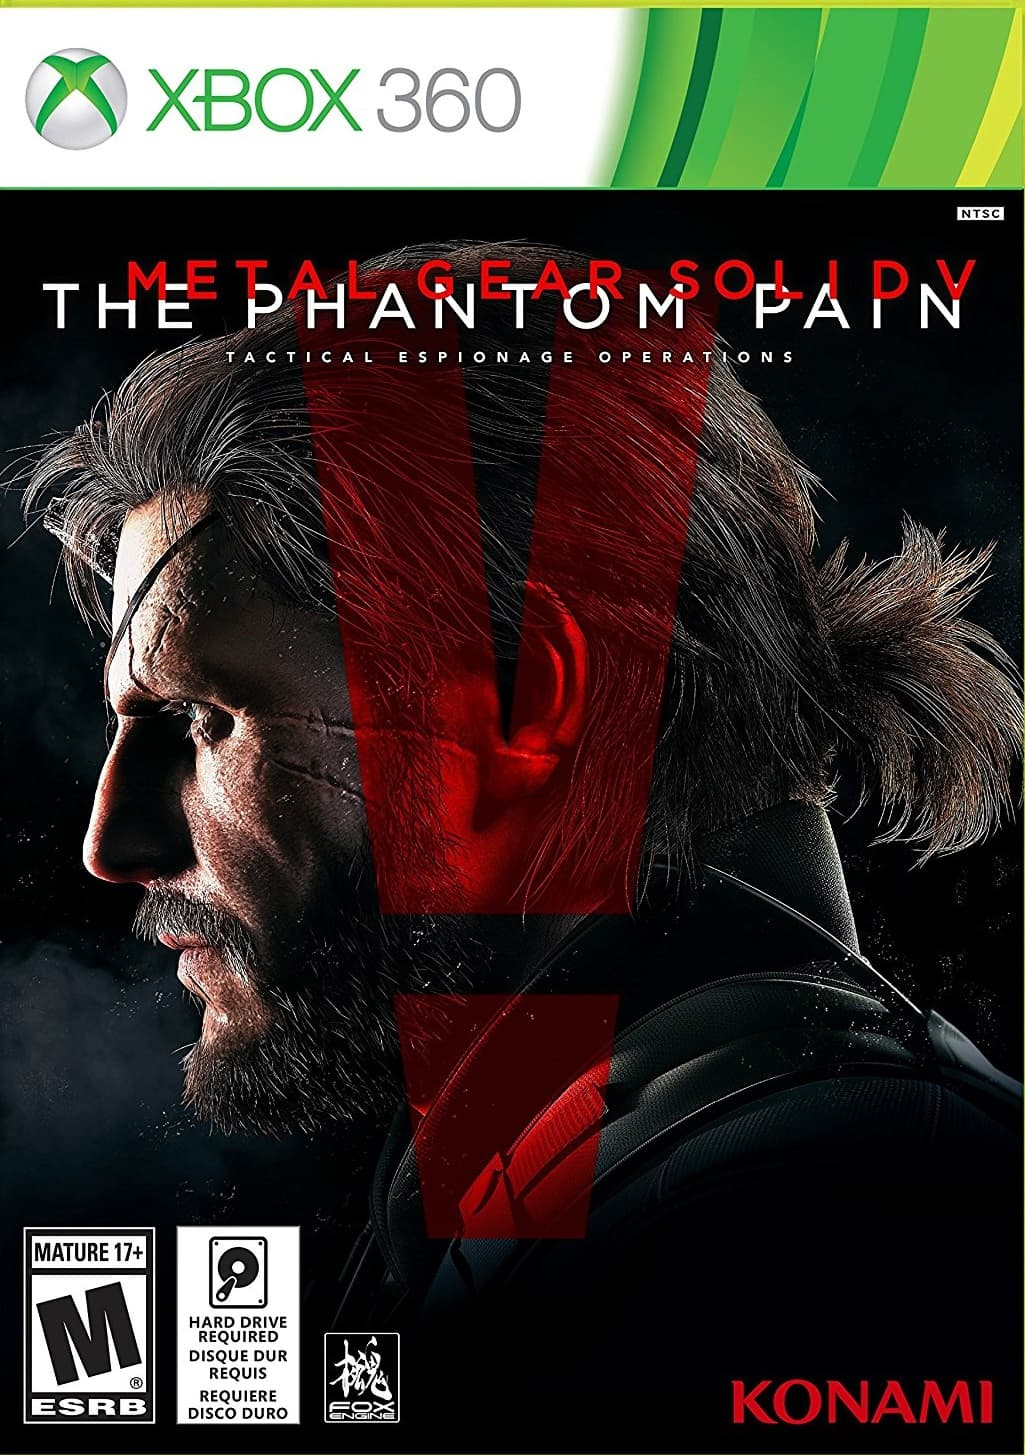 Buy now MGS V: The Phantom Pain + 2 games (XBOX 360) + GIFT🔥 and